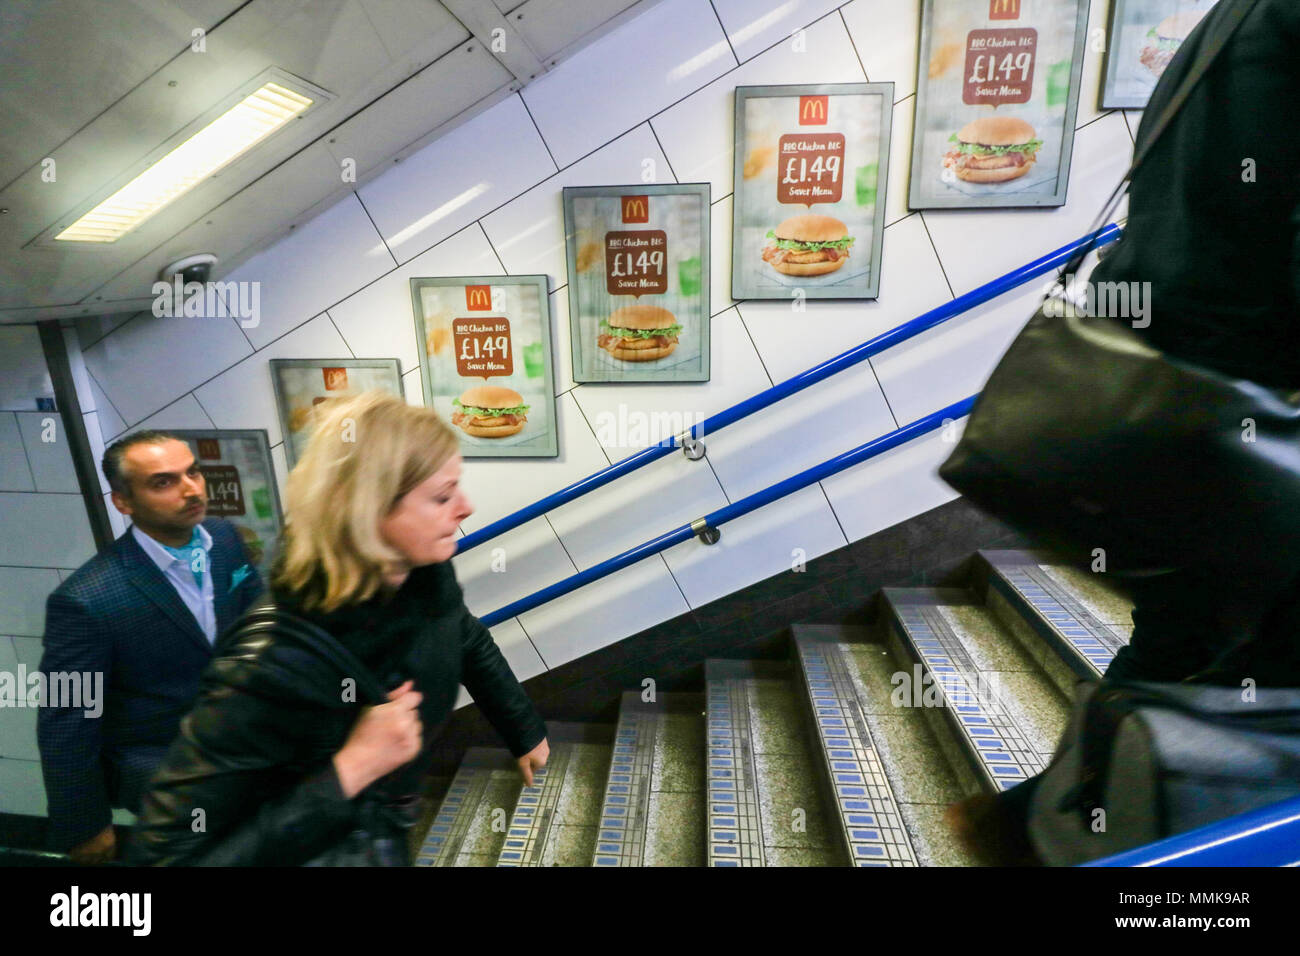 London UK. 12th May 2018. An underground station in Oxford Circus advertising cheap meals by fast food giant McDonlads. London Mayor Sadiq Khan has announced plans to ban junk food ads on London TFL iin order to reduce the growing epidemic of childhood obesity Credit: amer ghazzal/Alamy Live News - Stock Image